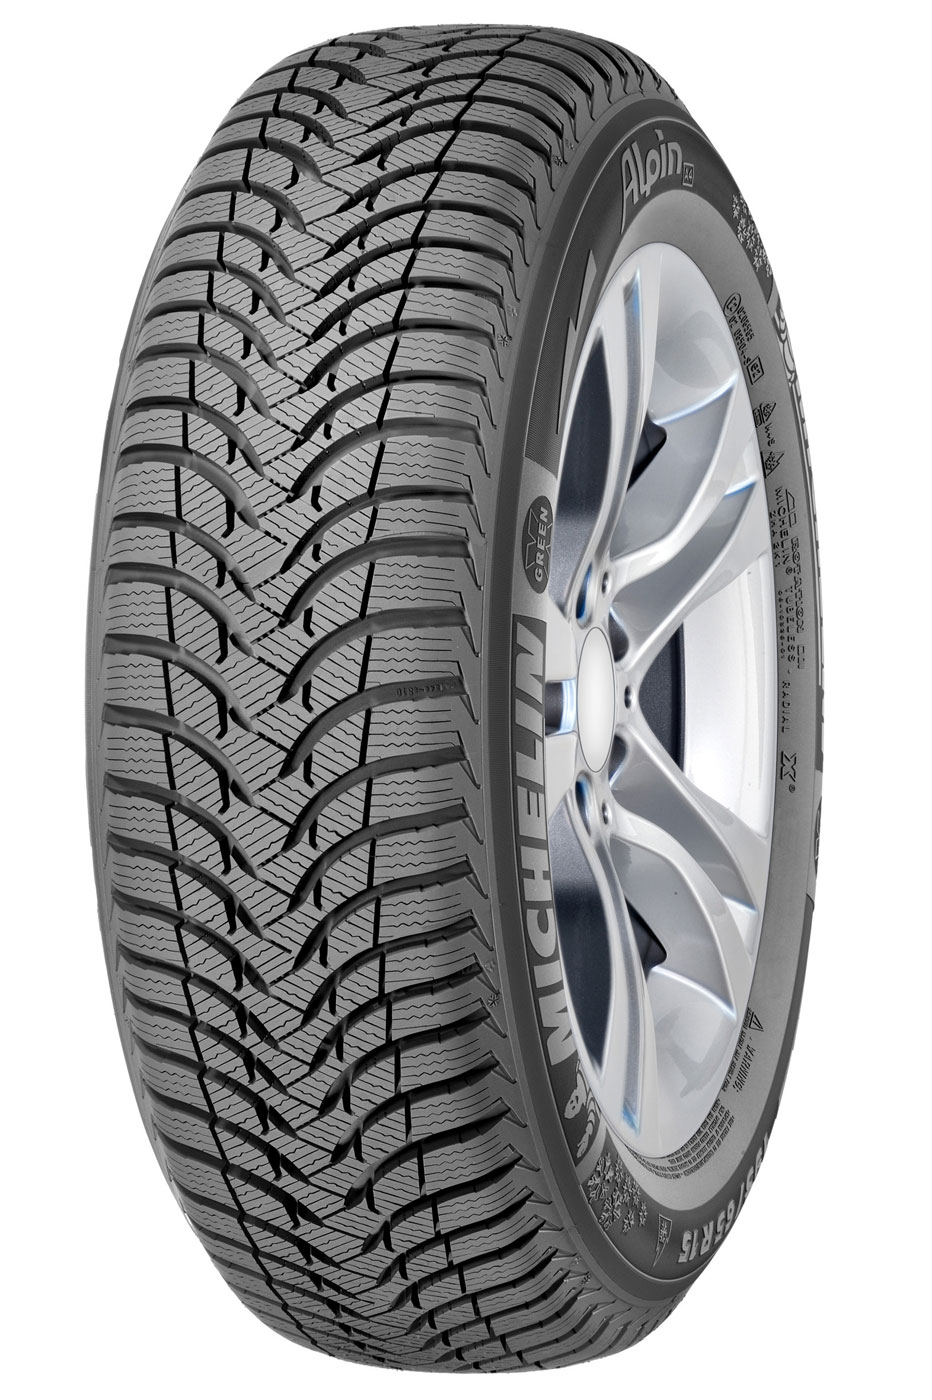 215/60R16 99T Alpin A4 XL Michelin